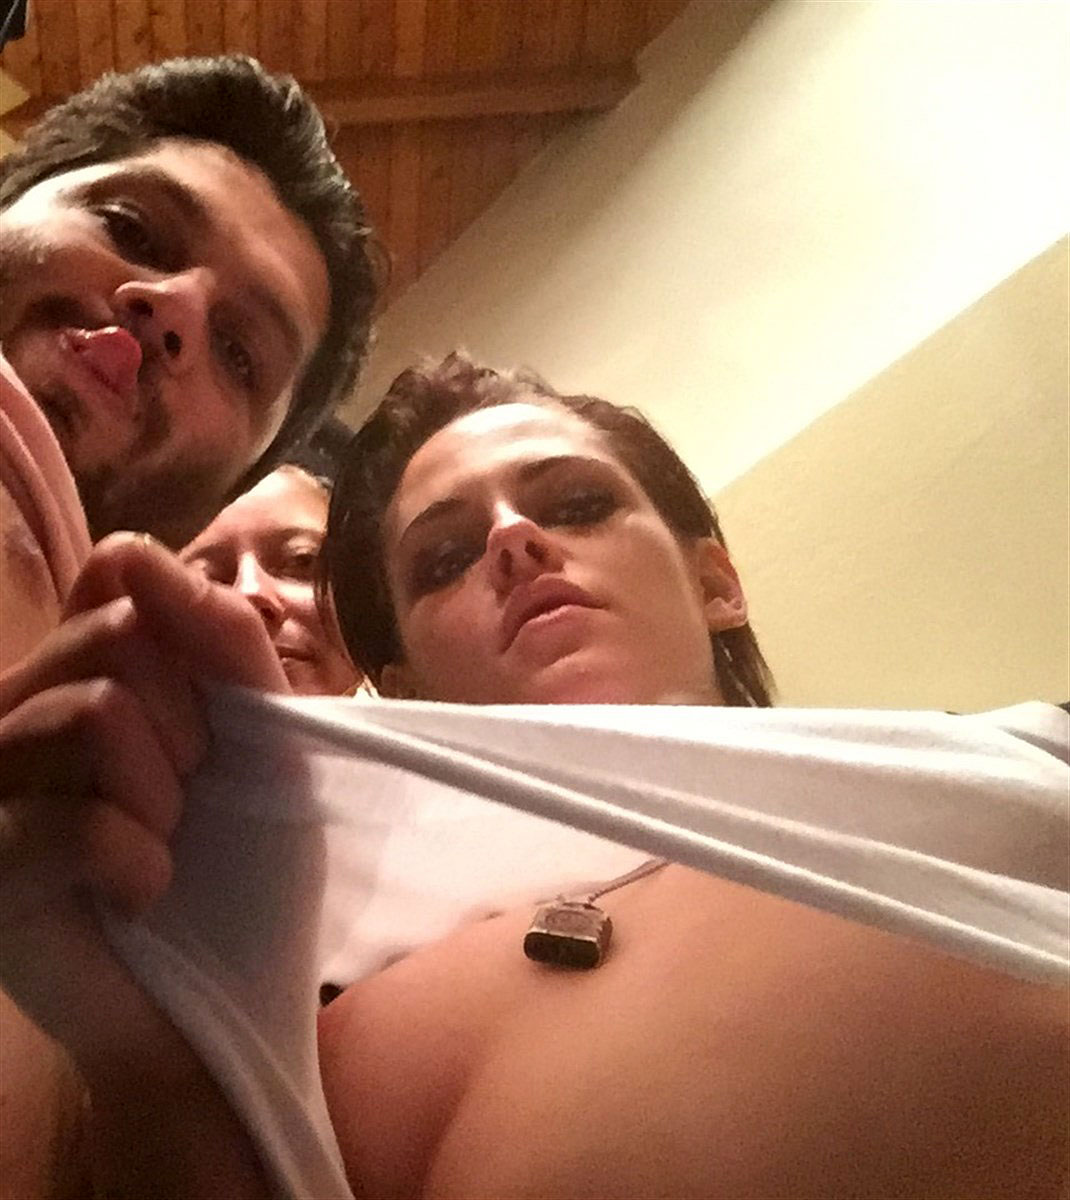 There's Naked kristen stewart nude sorry, that